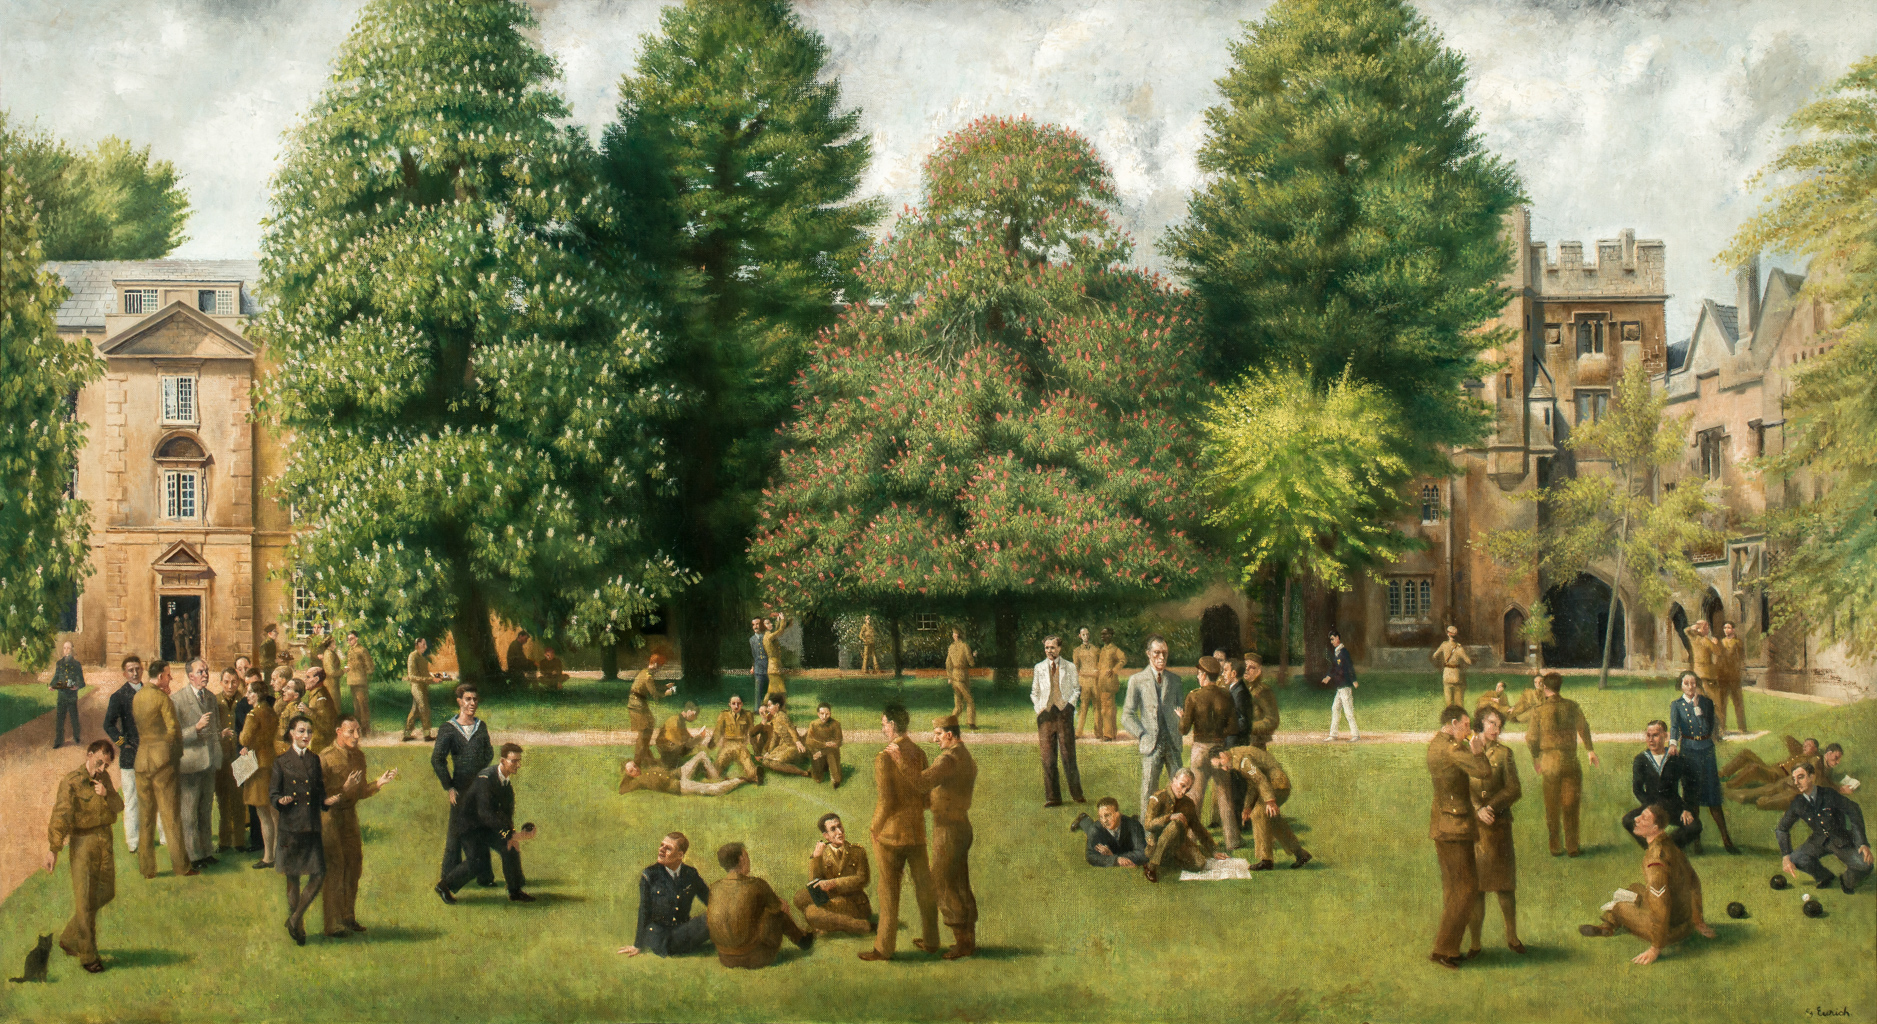 The Garden Quad in Wartime by Richard Eurich, c. 1945 (photo: Paul Carter)